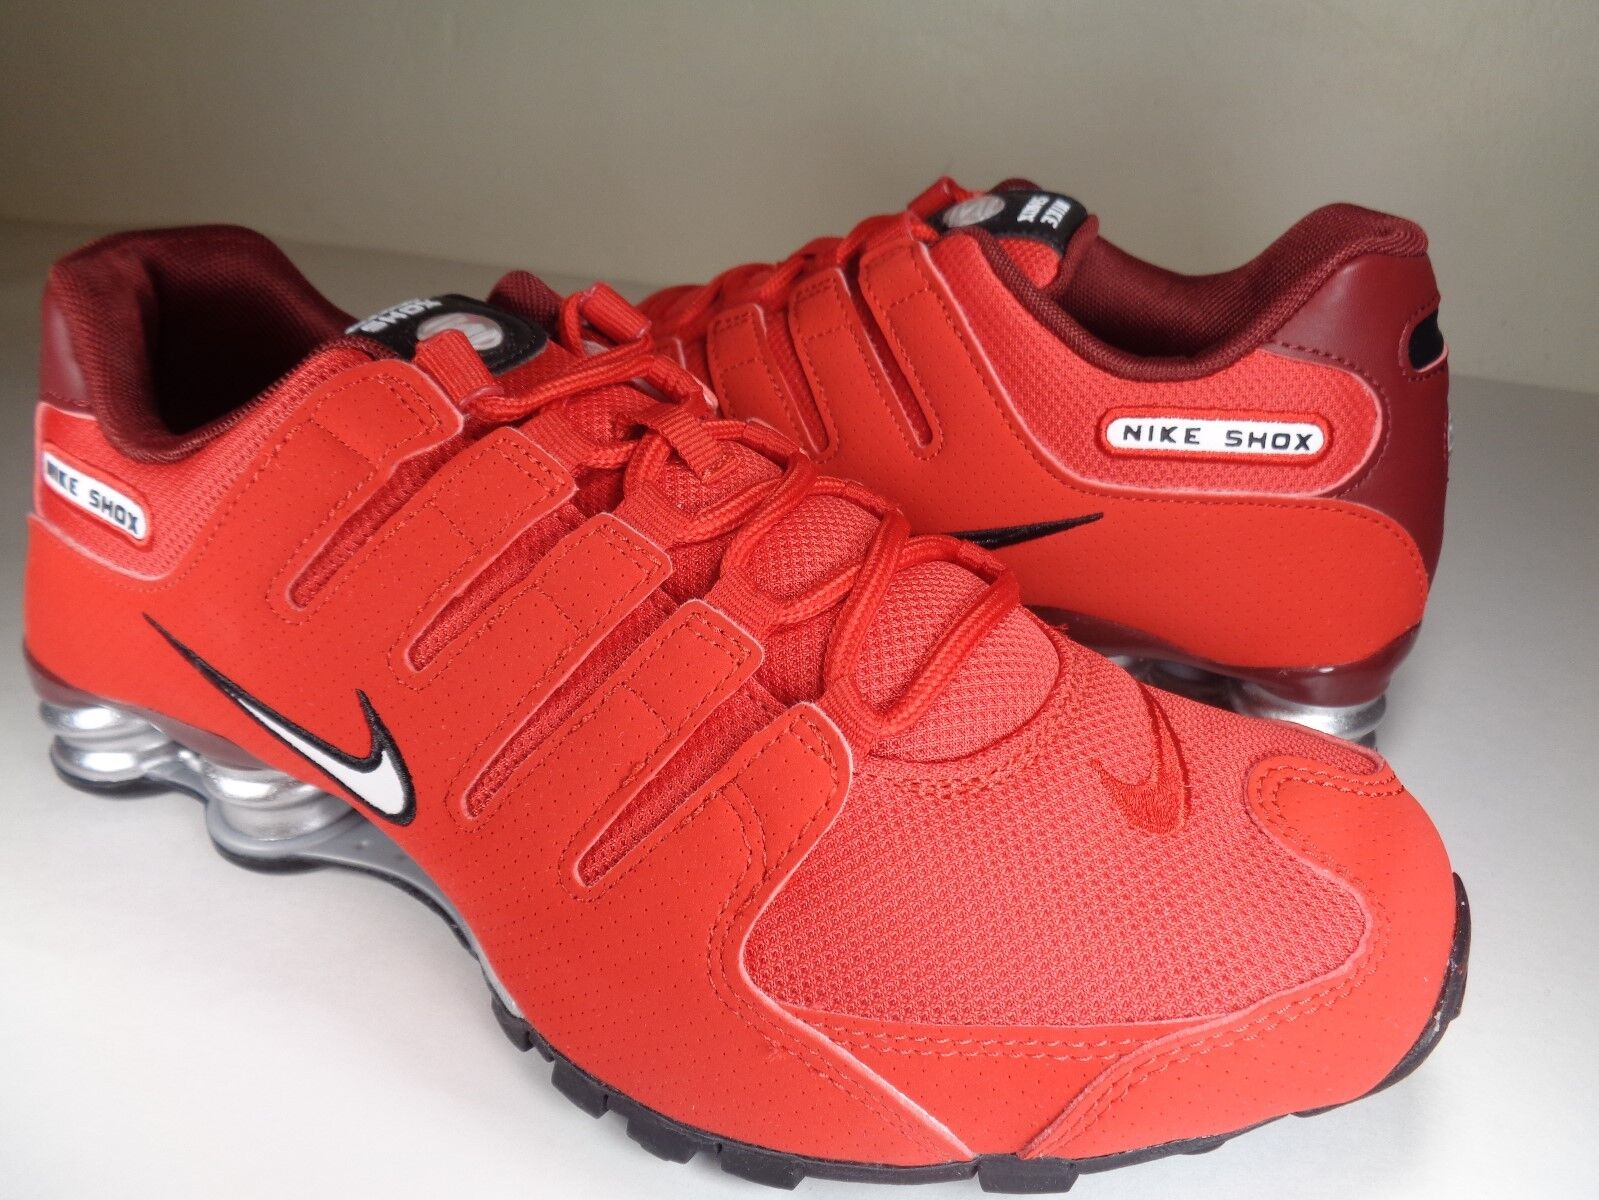 Nike Blanco Shox NZ Universidad Rojo Blanco Nike Team Rojo (378341601) f9c4c0